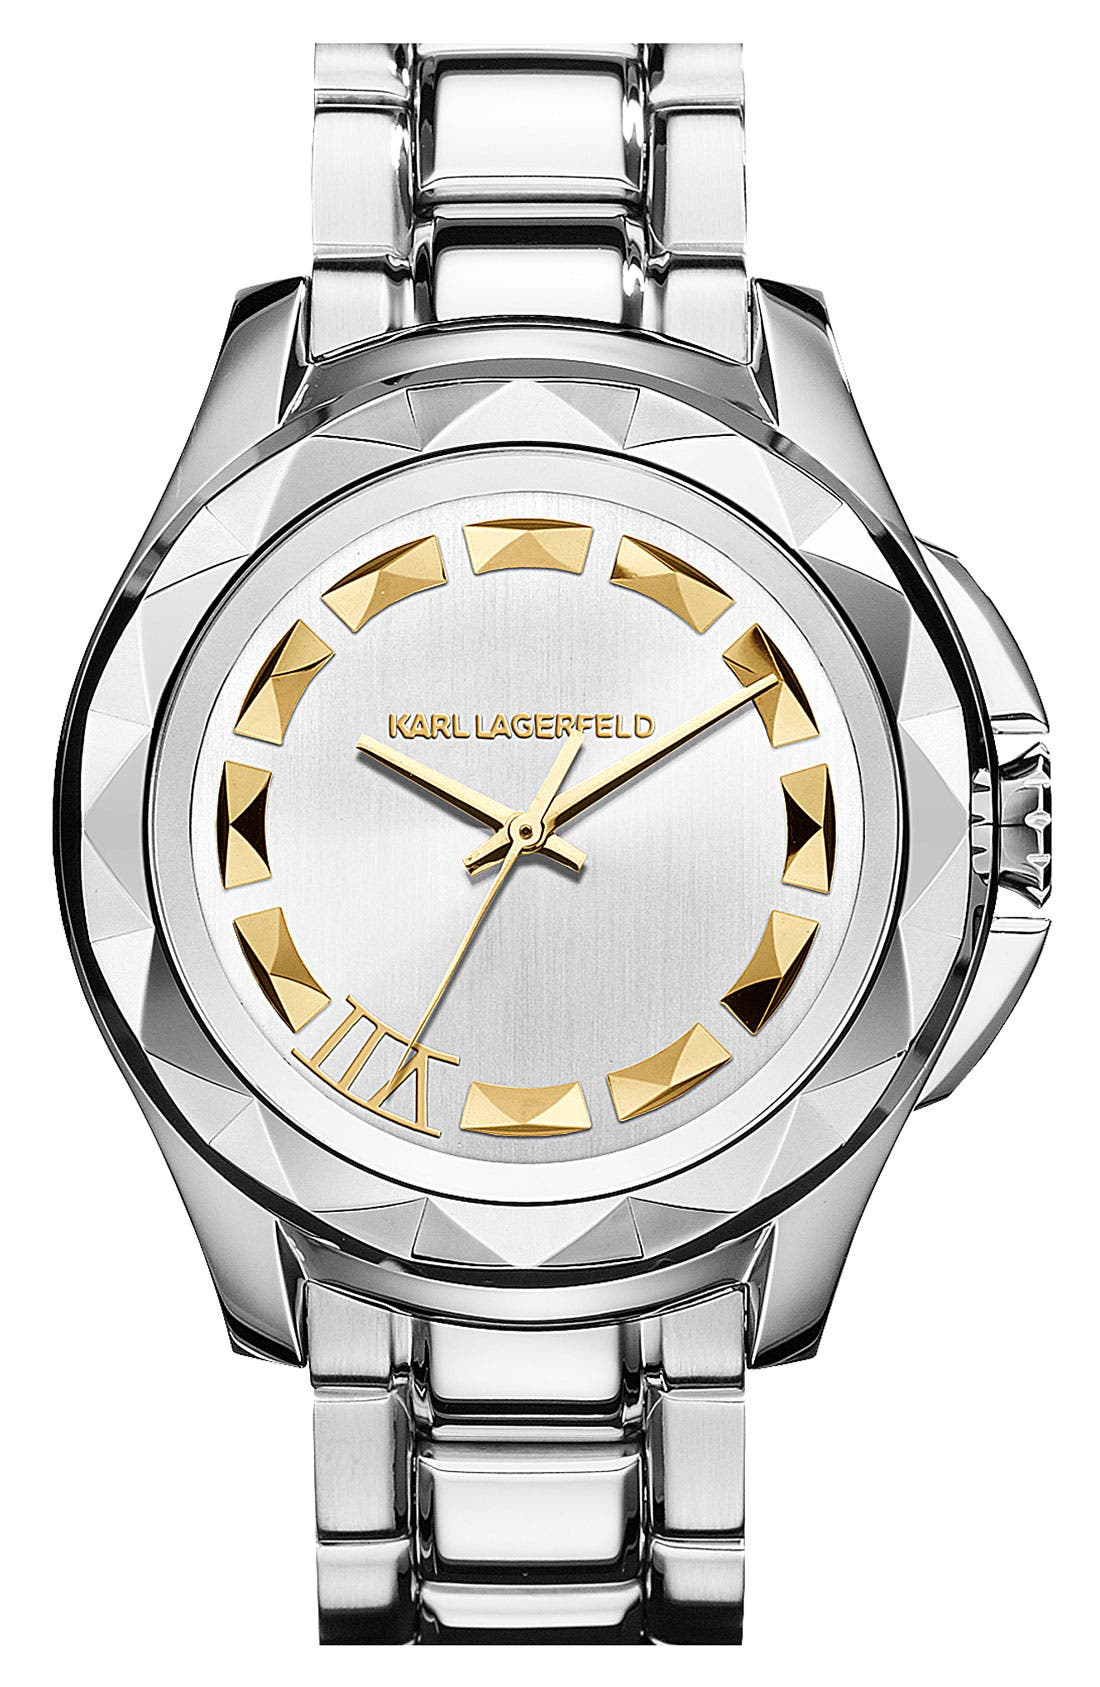 Alternate Image 1 Selected - KARL LAGERFELD '7' Faceted Bezel Bracelet Watch, 44mm x 53mm